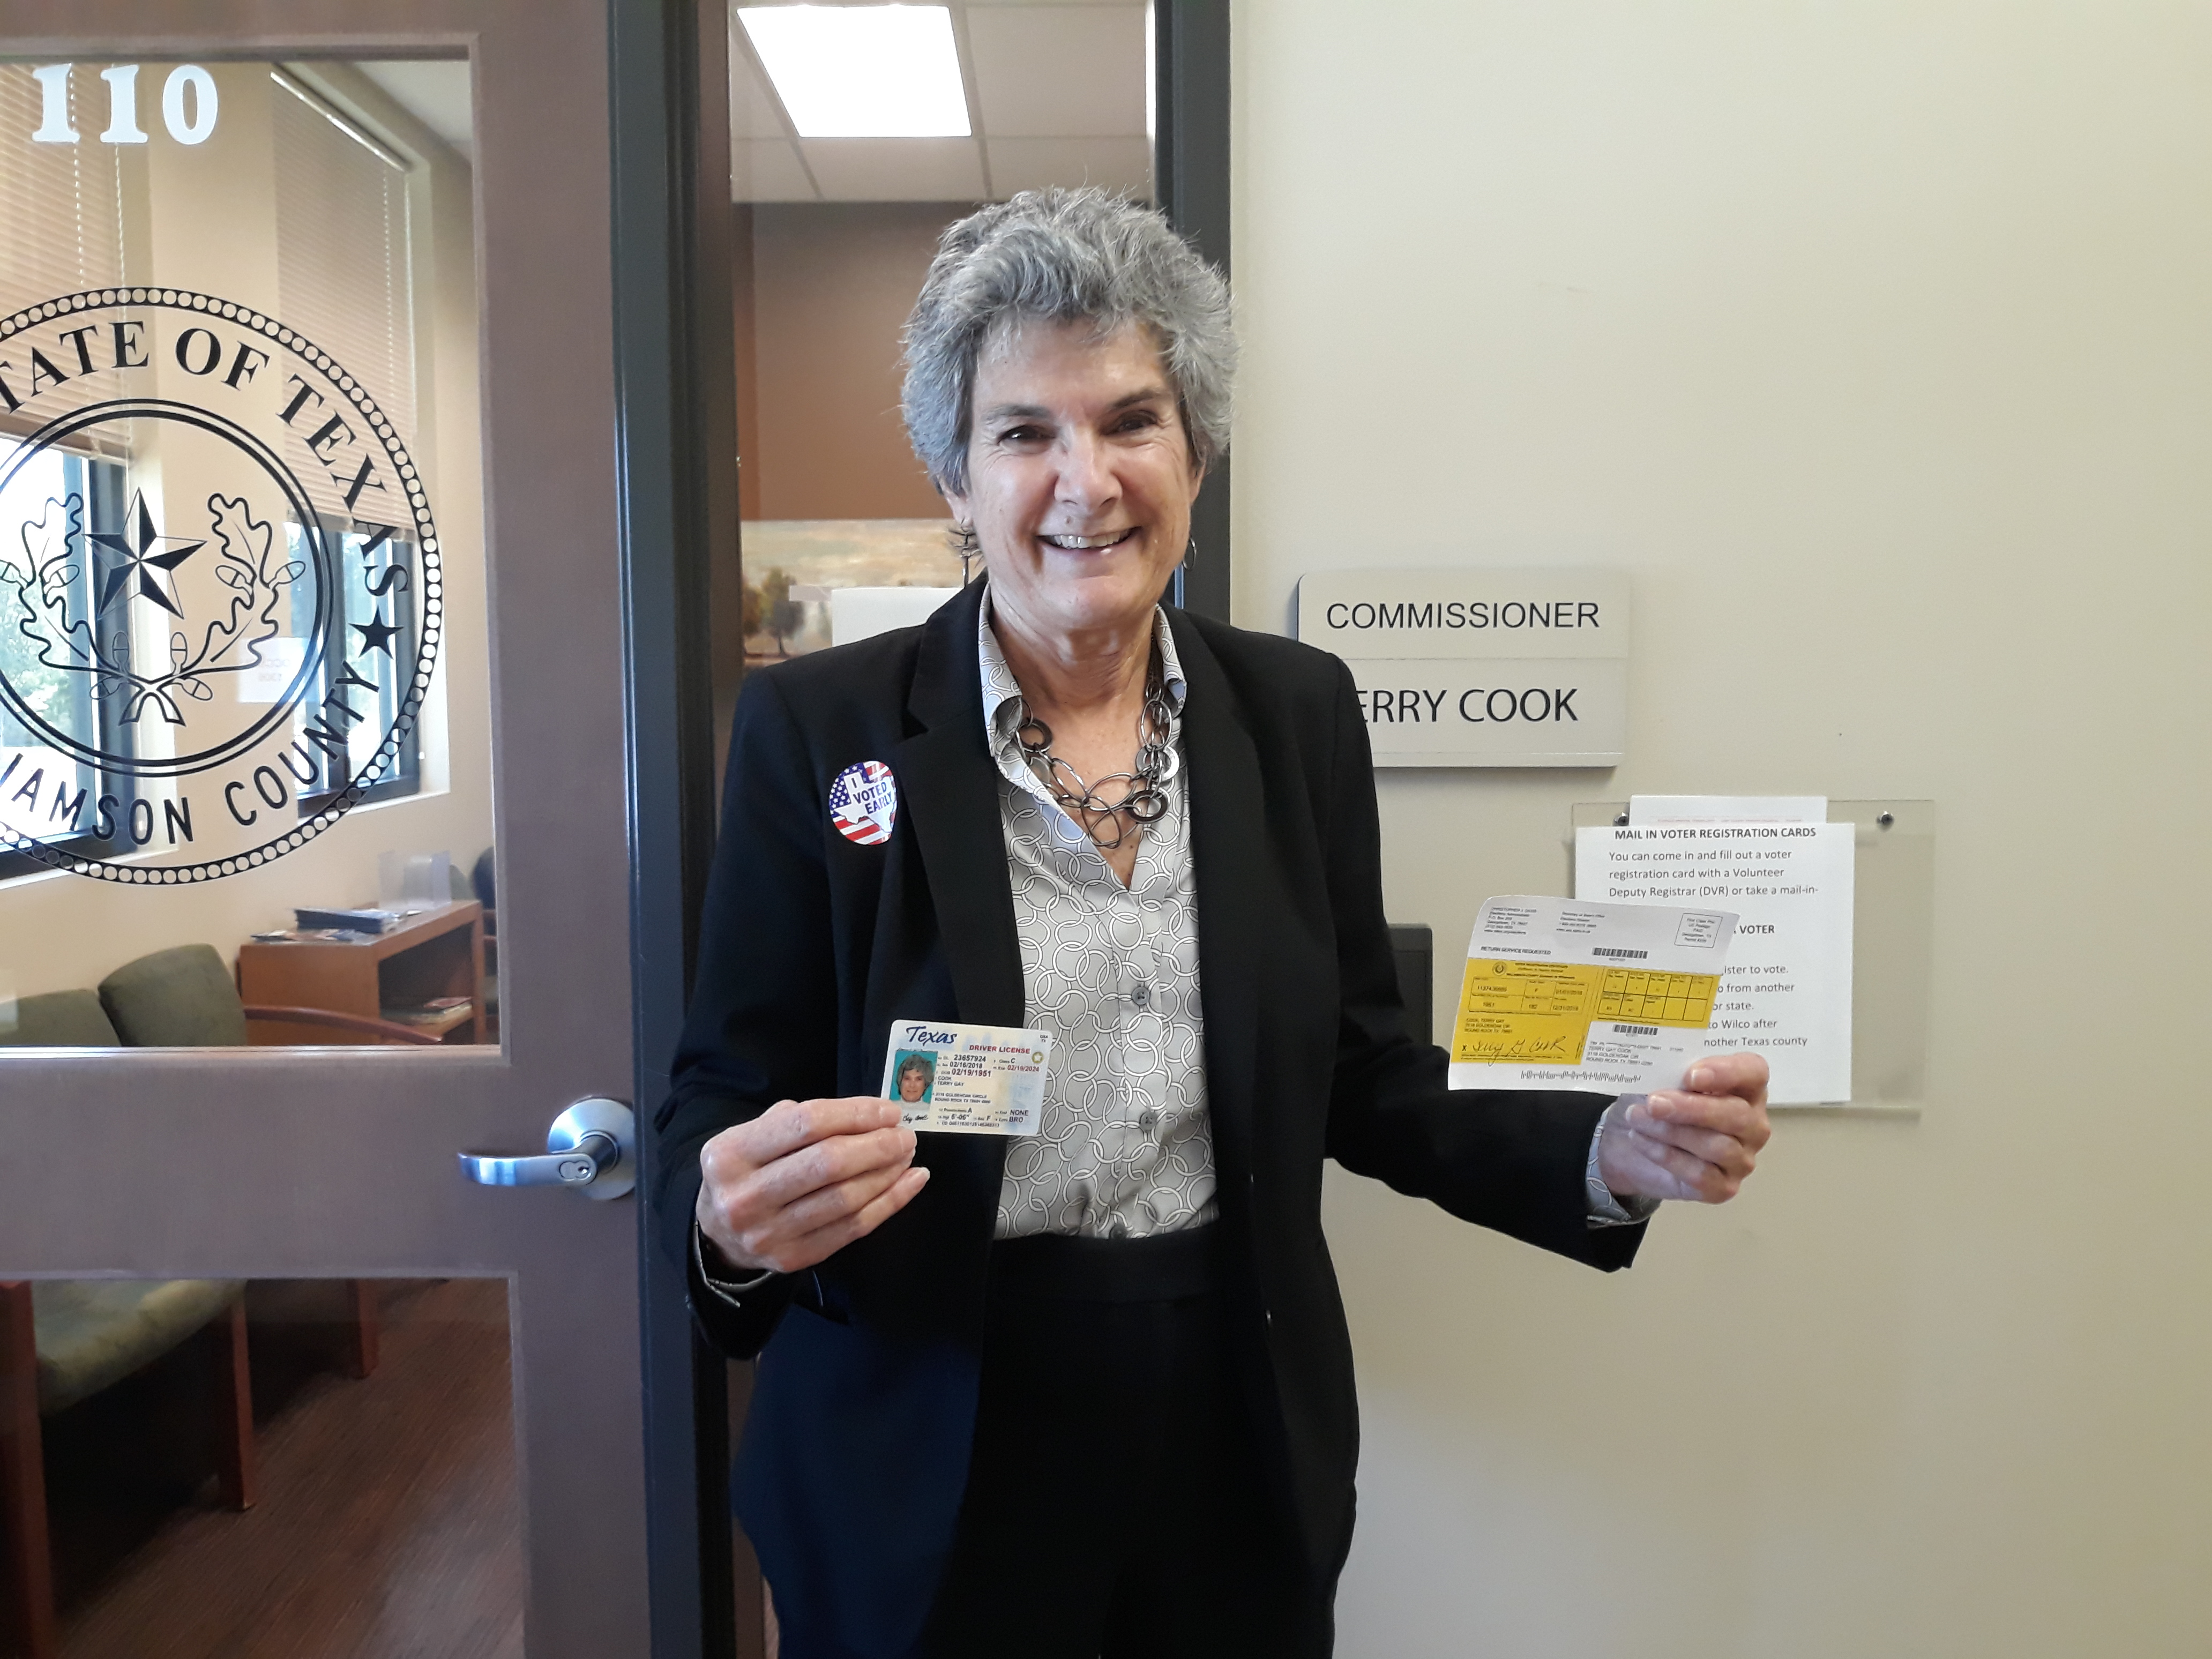 Commissioner Cook holds up her voter registration card and driver's license after she cast her vote on the first day of early voting at the Precinct 1 Jester Annex in Round Rock.